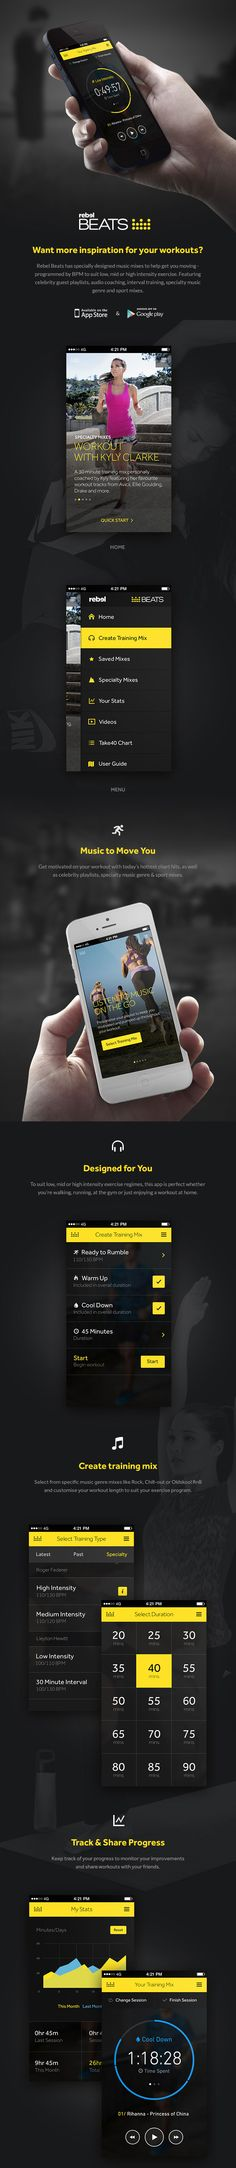 Daily Mobile UI Design Inspiration #242